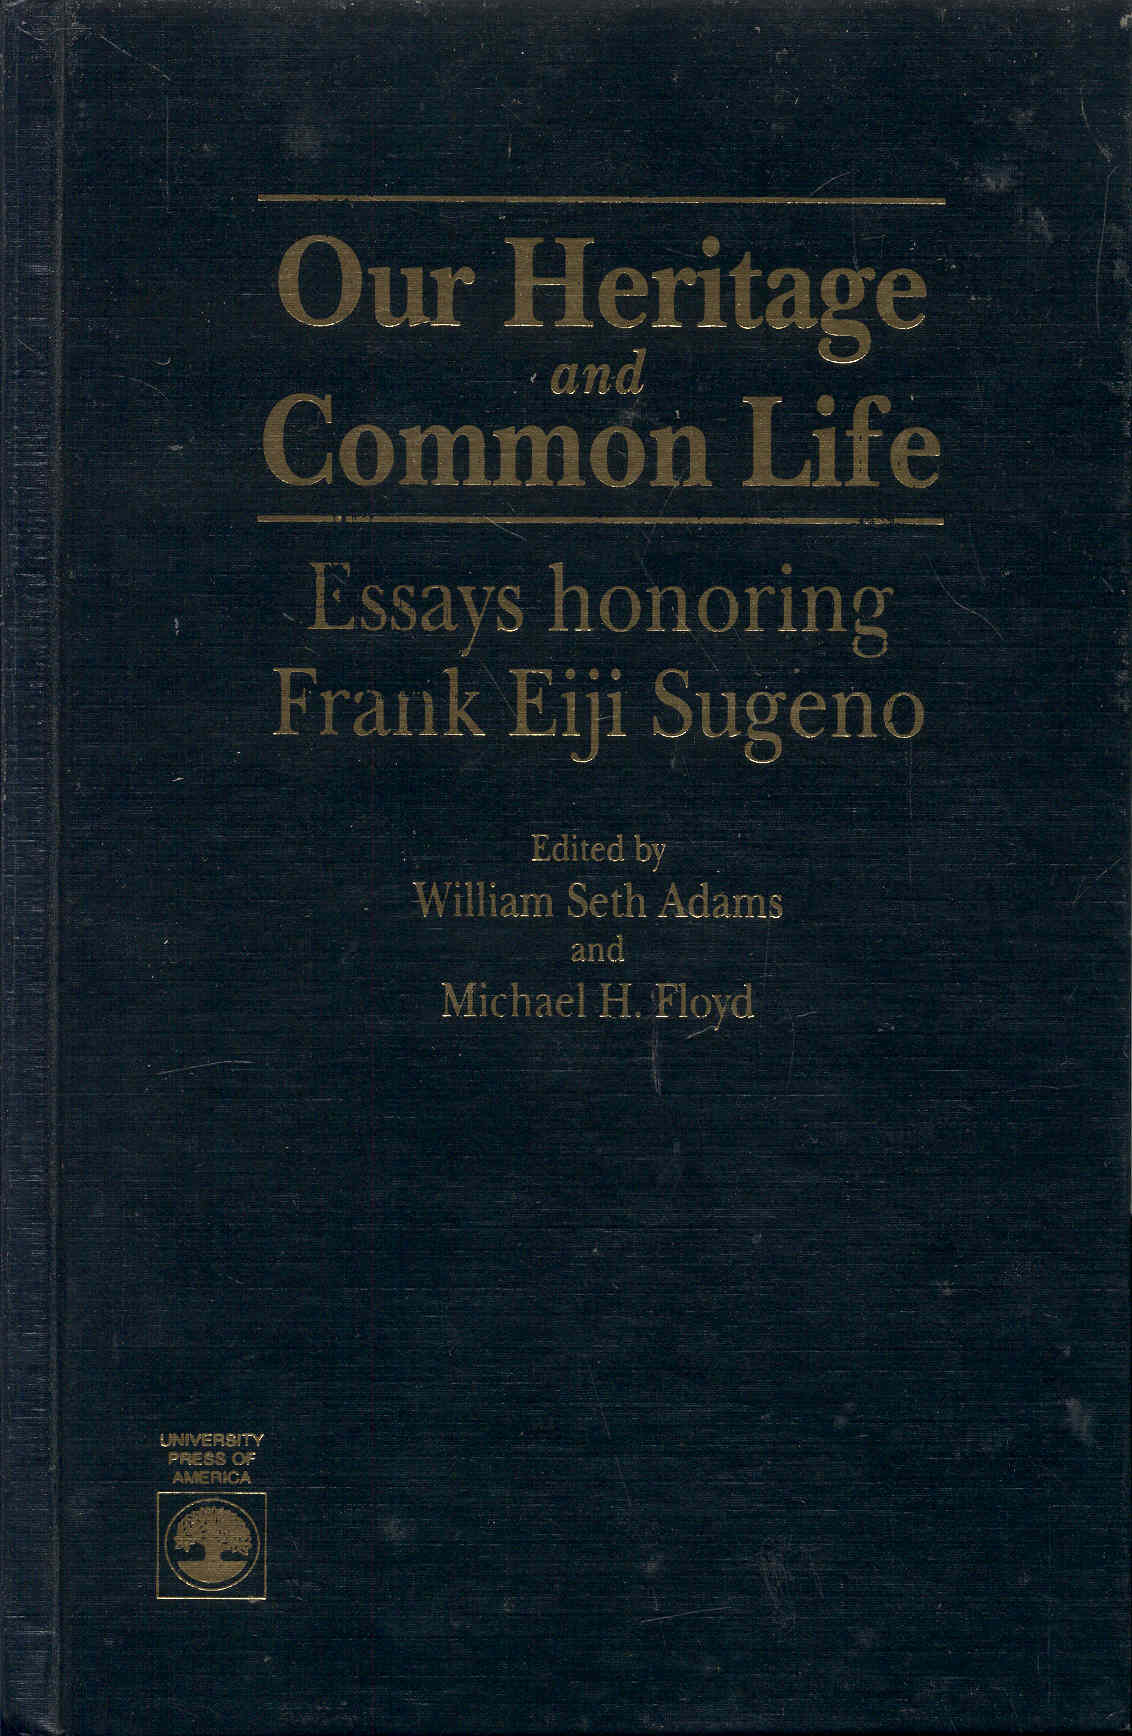 Image for Our Heritage and Common Life: Essays Honoring Frank Eiji Sugeno